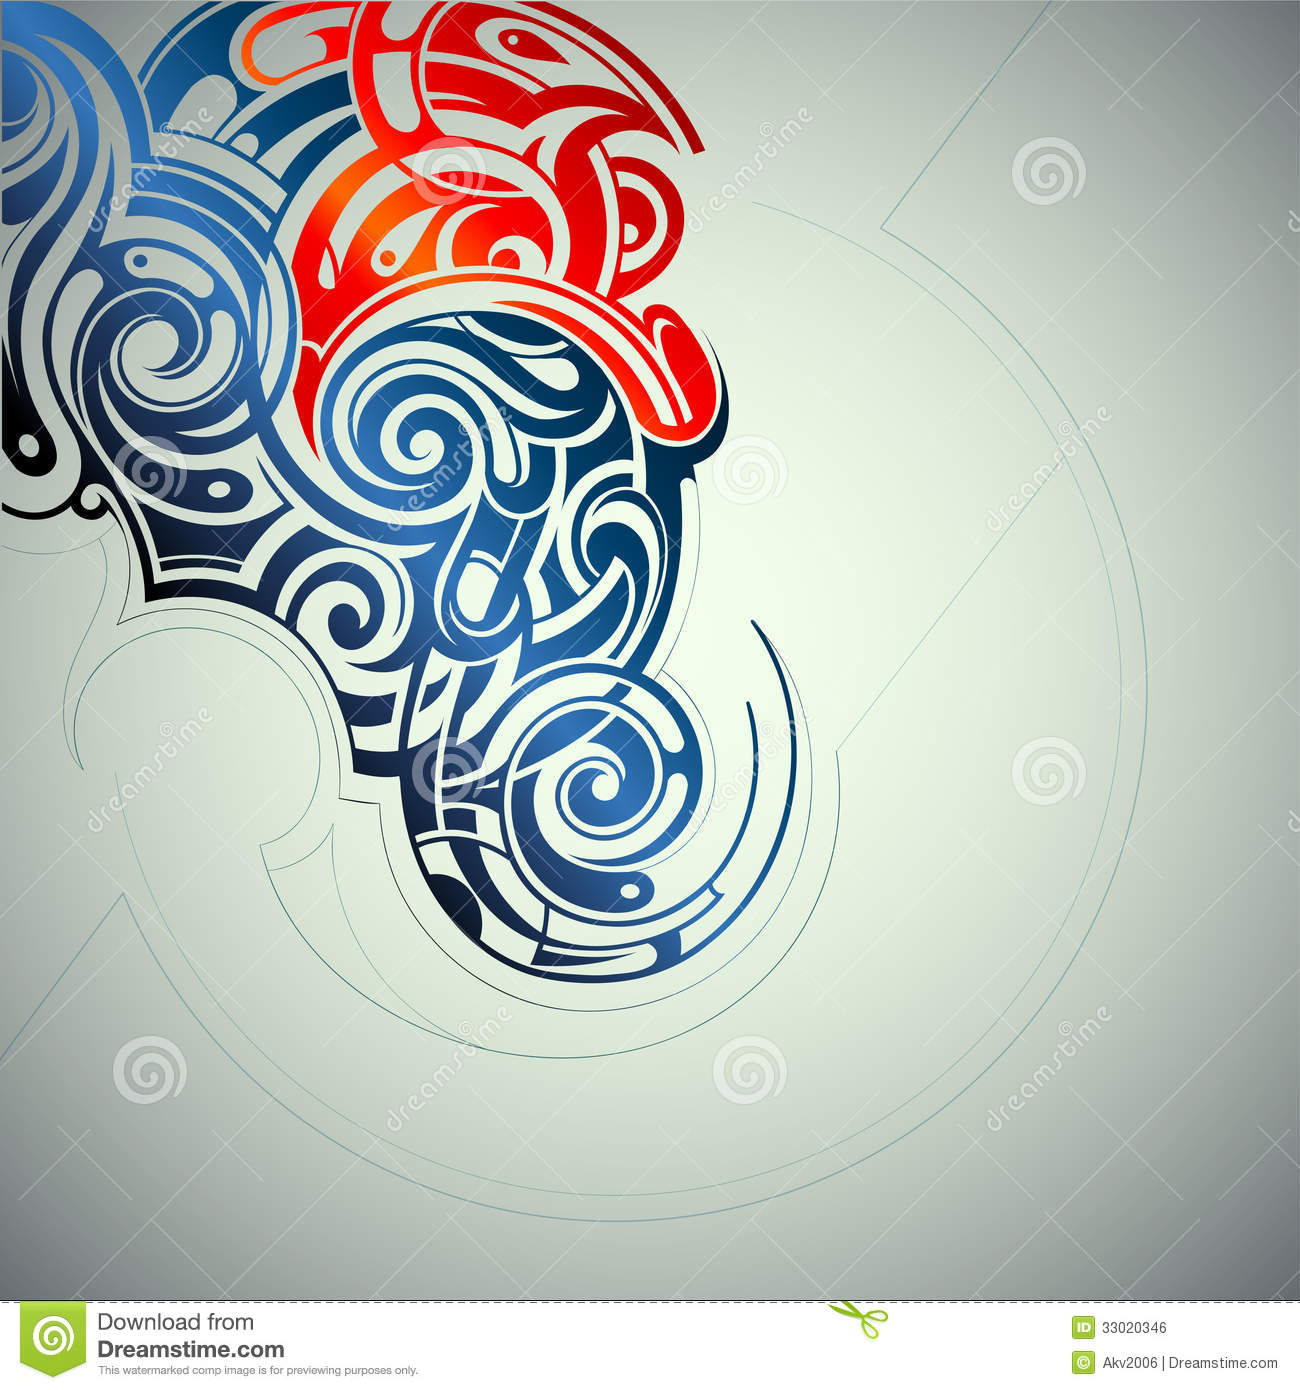 Graphic Design Element Royalty Free Stock Image  Image: 33020346